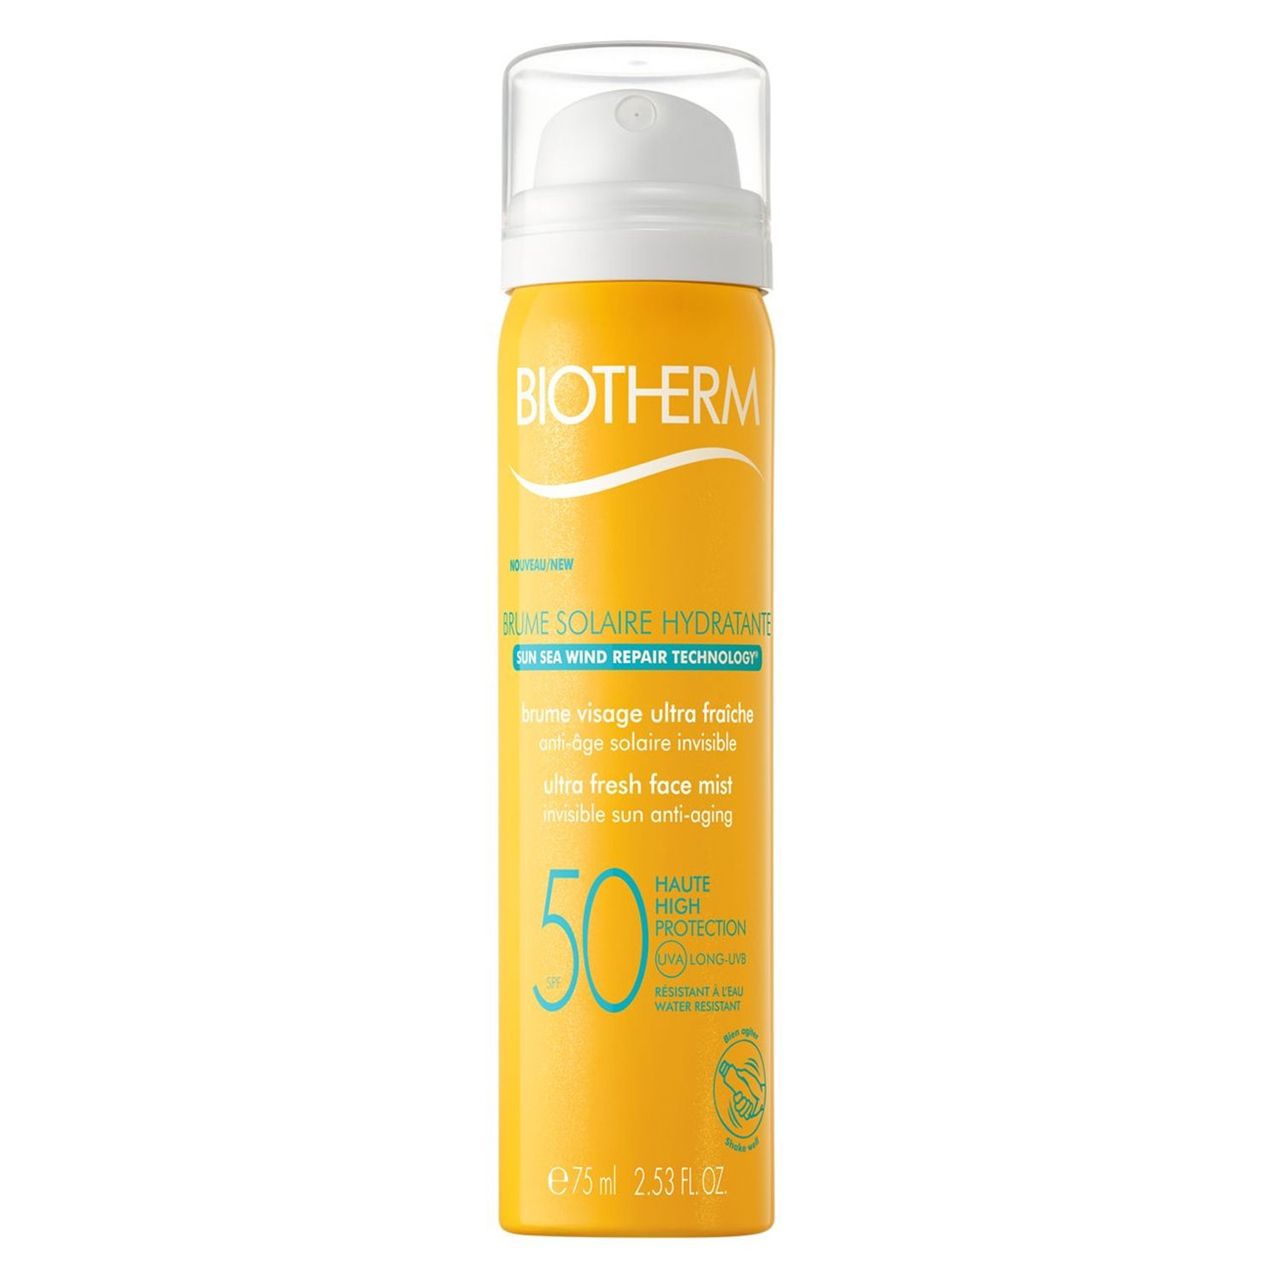 Biotherm Brume Solaire Hydratante Face Mist SPF 50 75ml